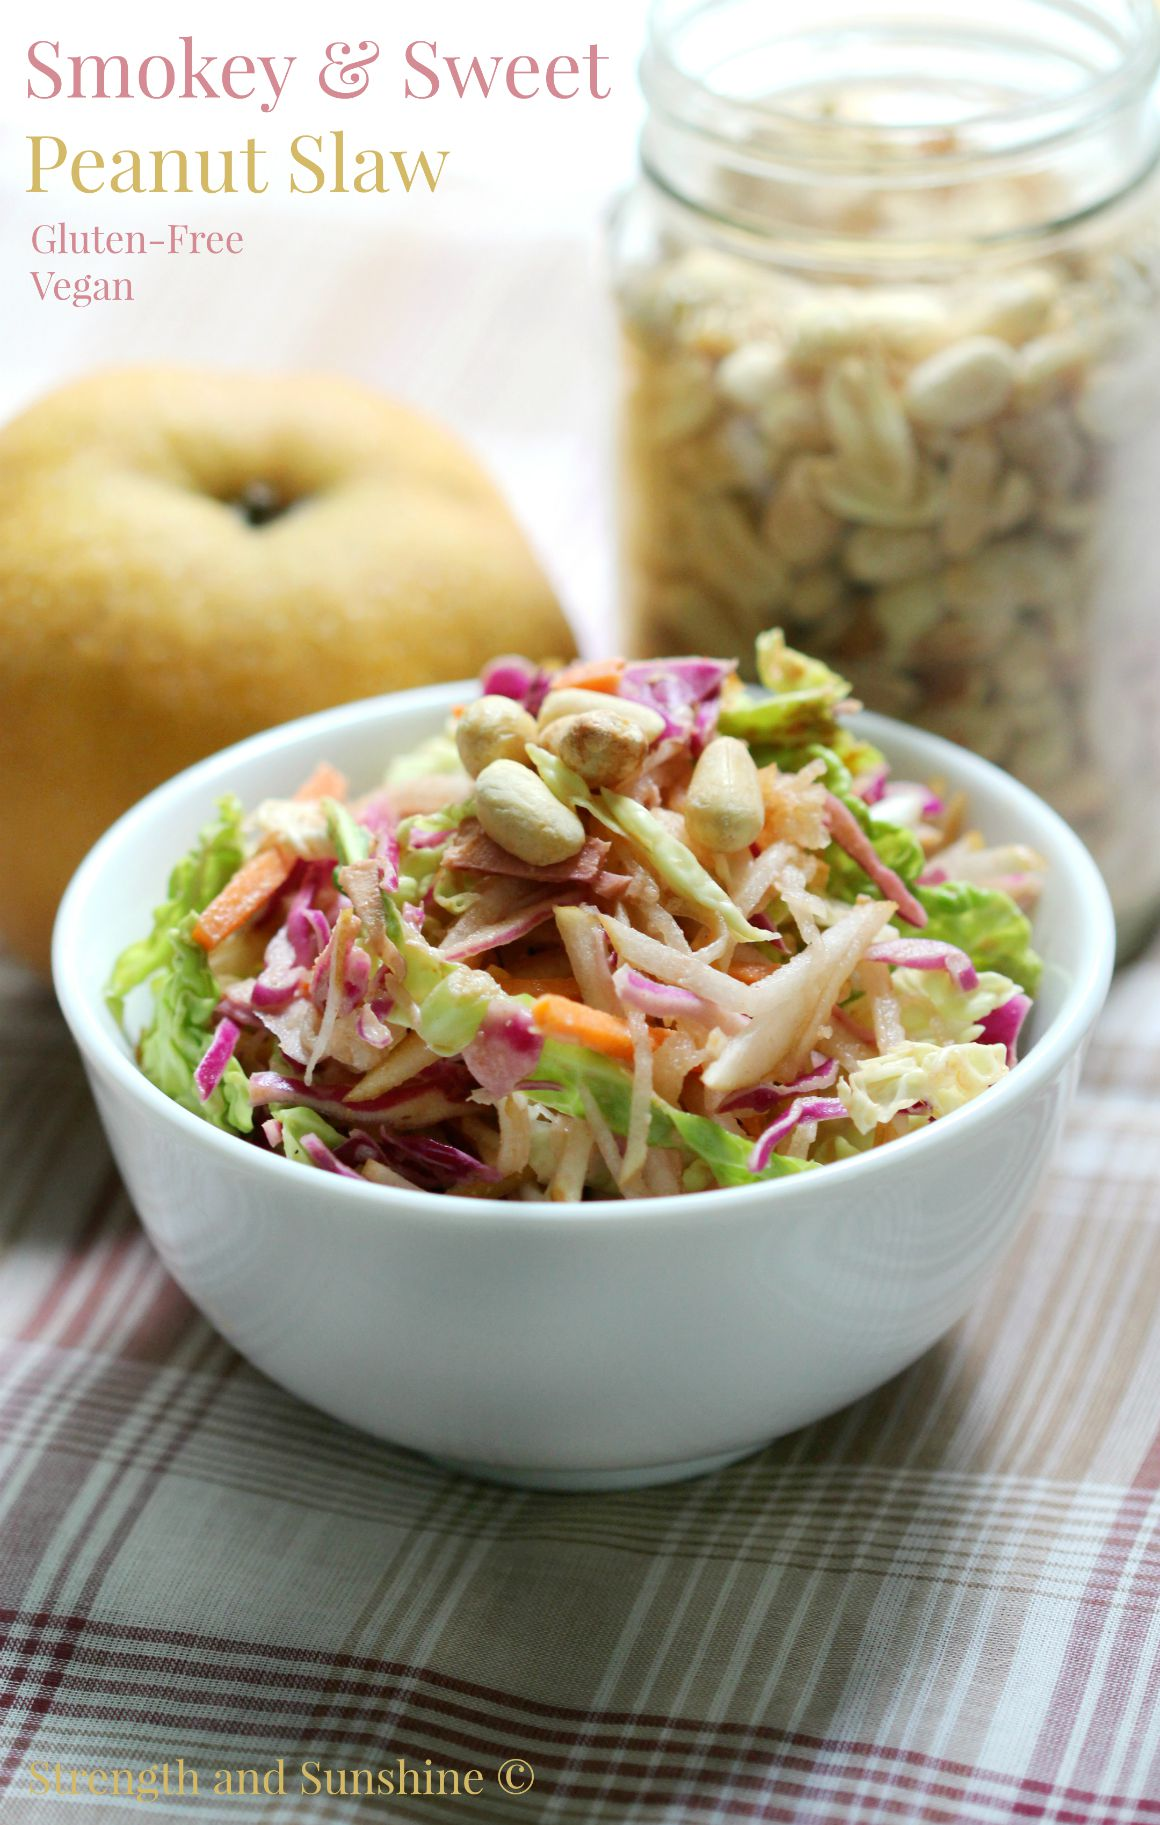 slaw has it all. Crunchy cabbage, crispy Asian pear, shredded carrots ...